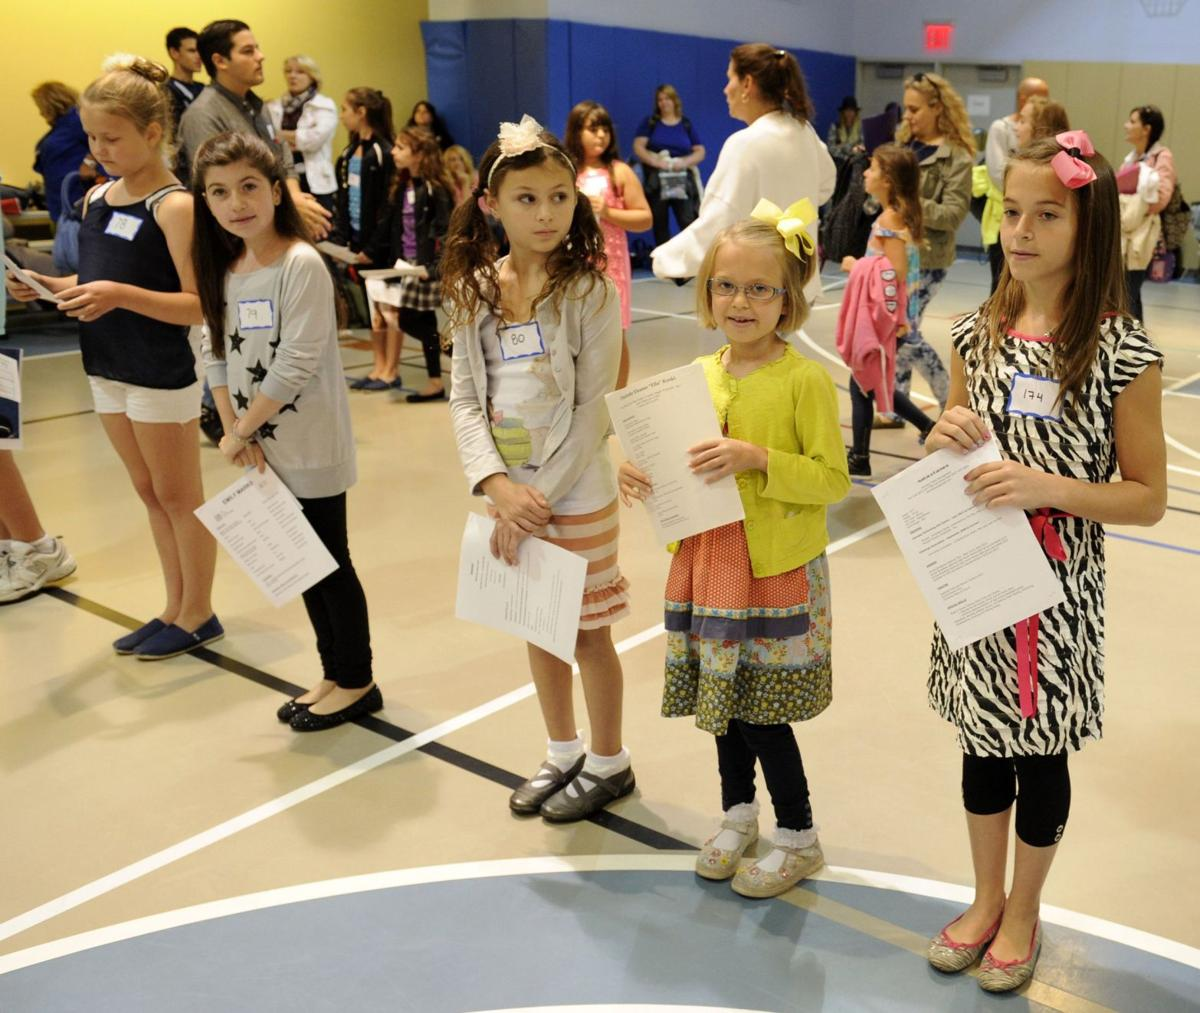 Kids audition for 'The Sound of Music'